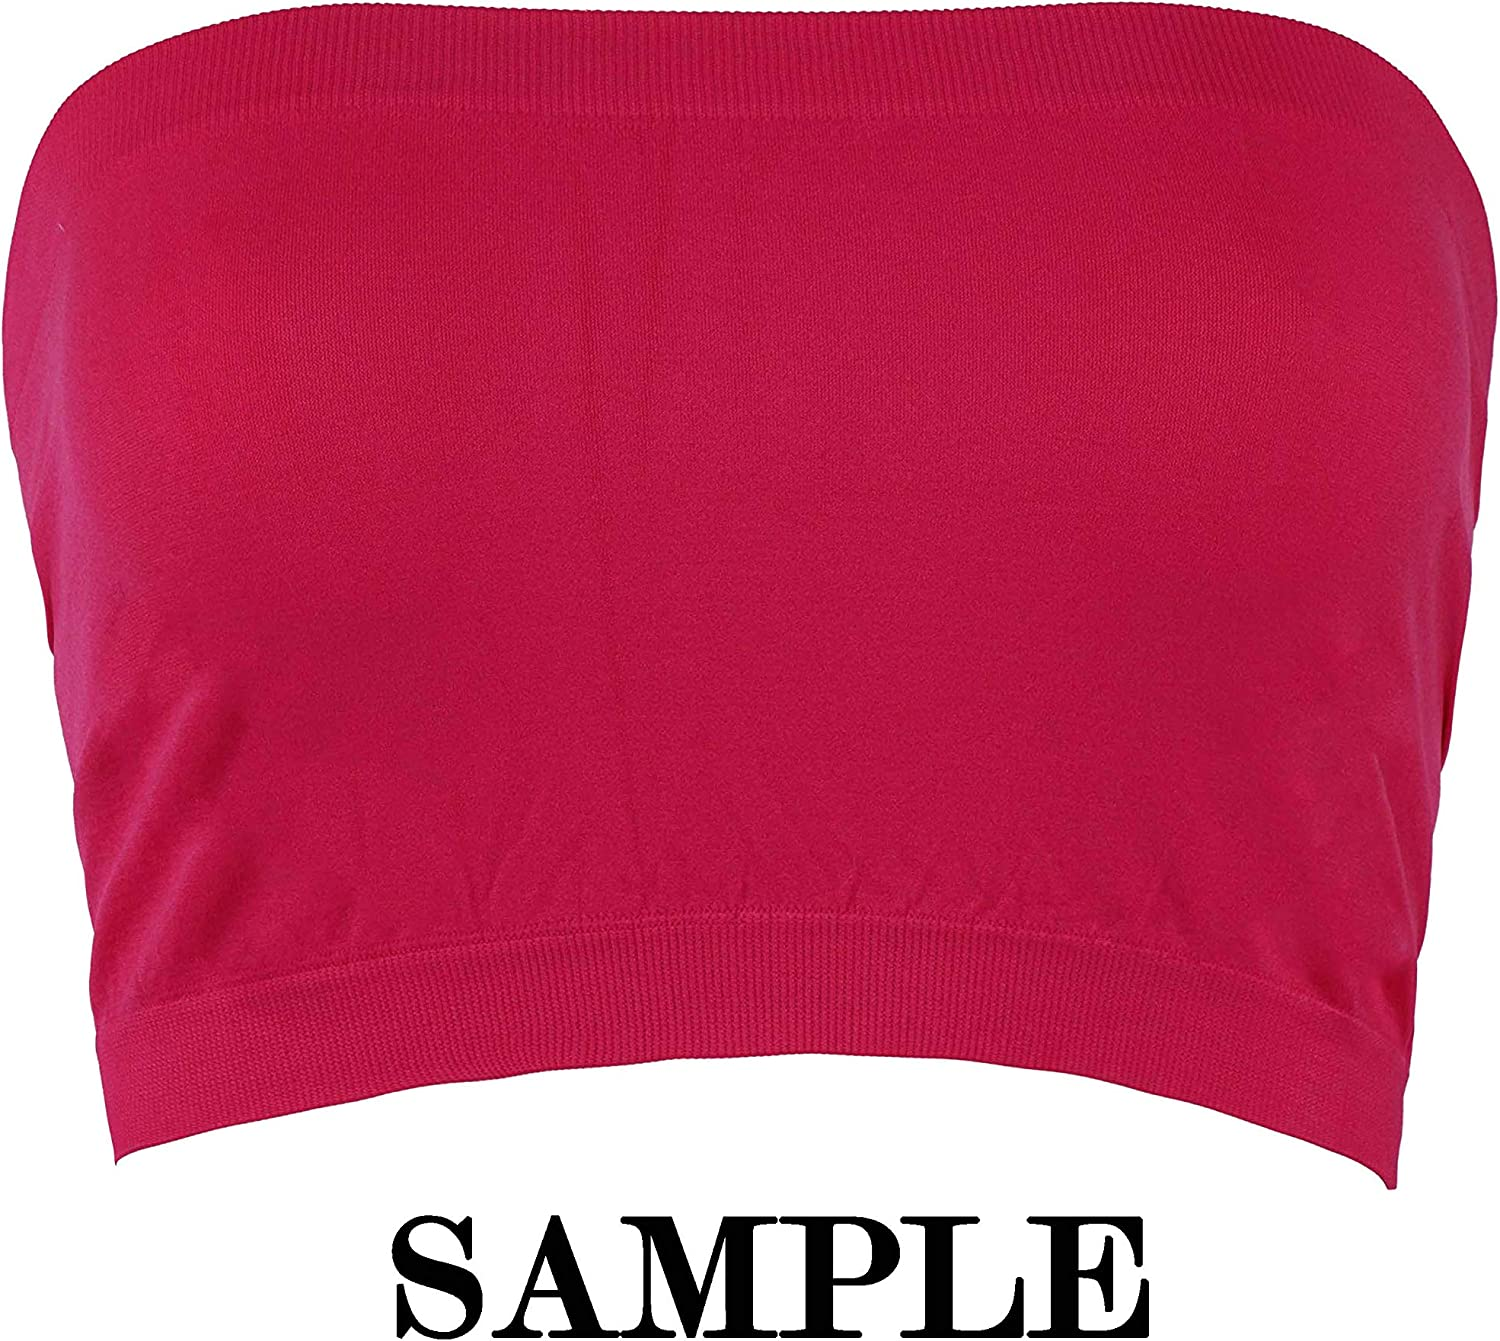 PRO FIT Women's Strapless Bra Bandeau Tube Top Multi Pack Seamless Regular and Plus Sizes